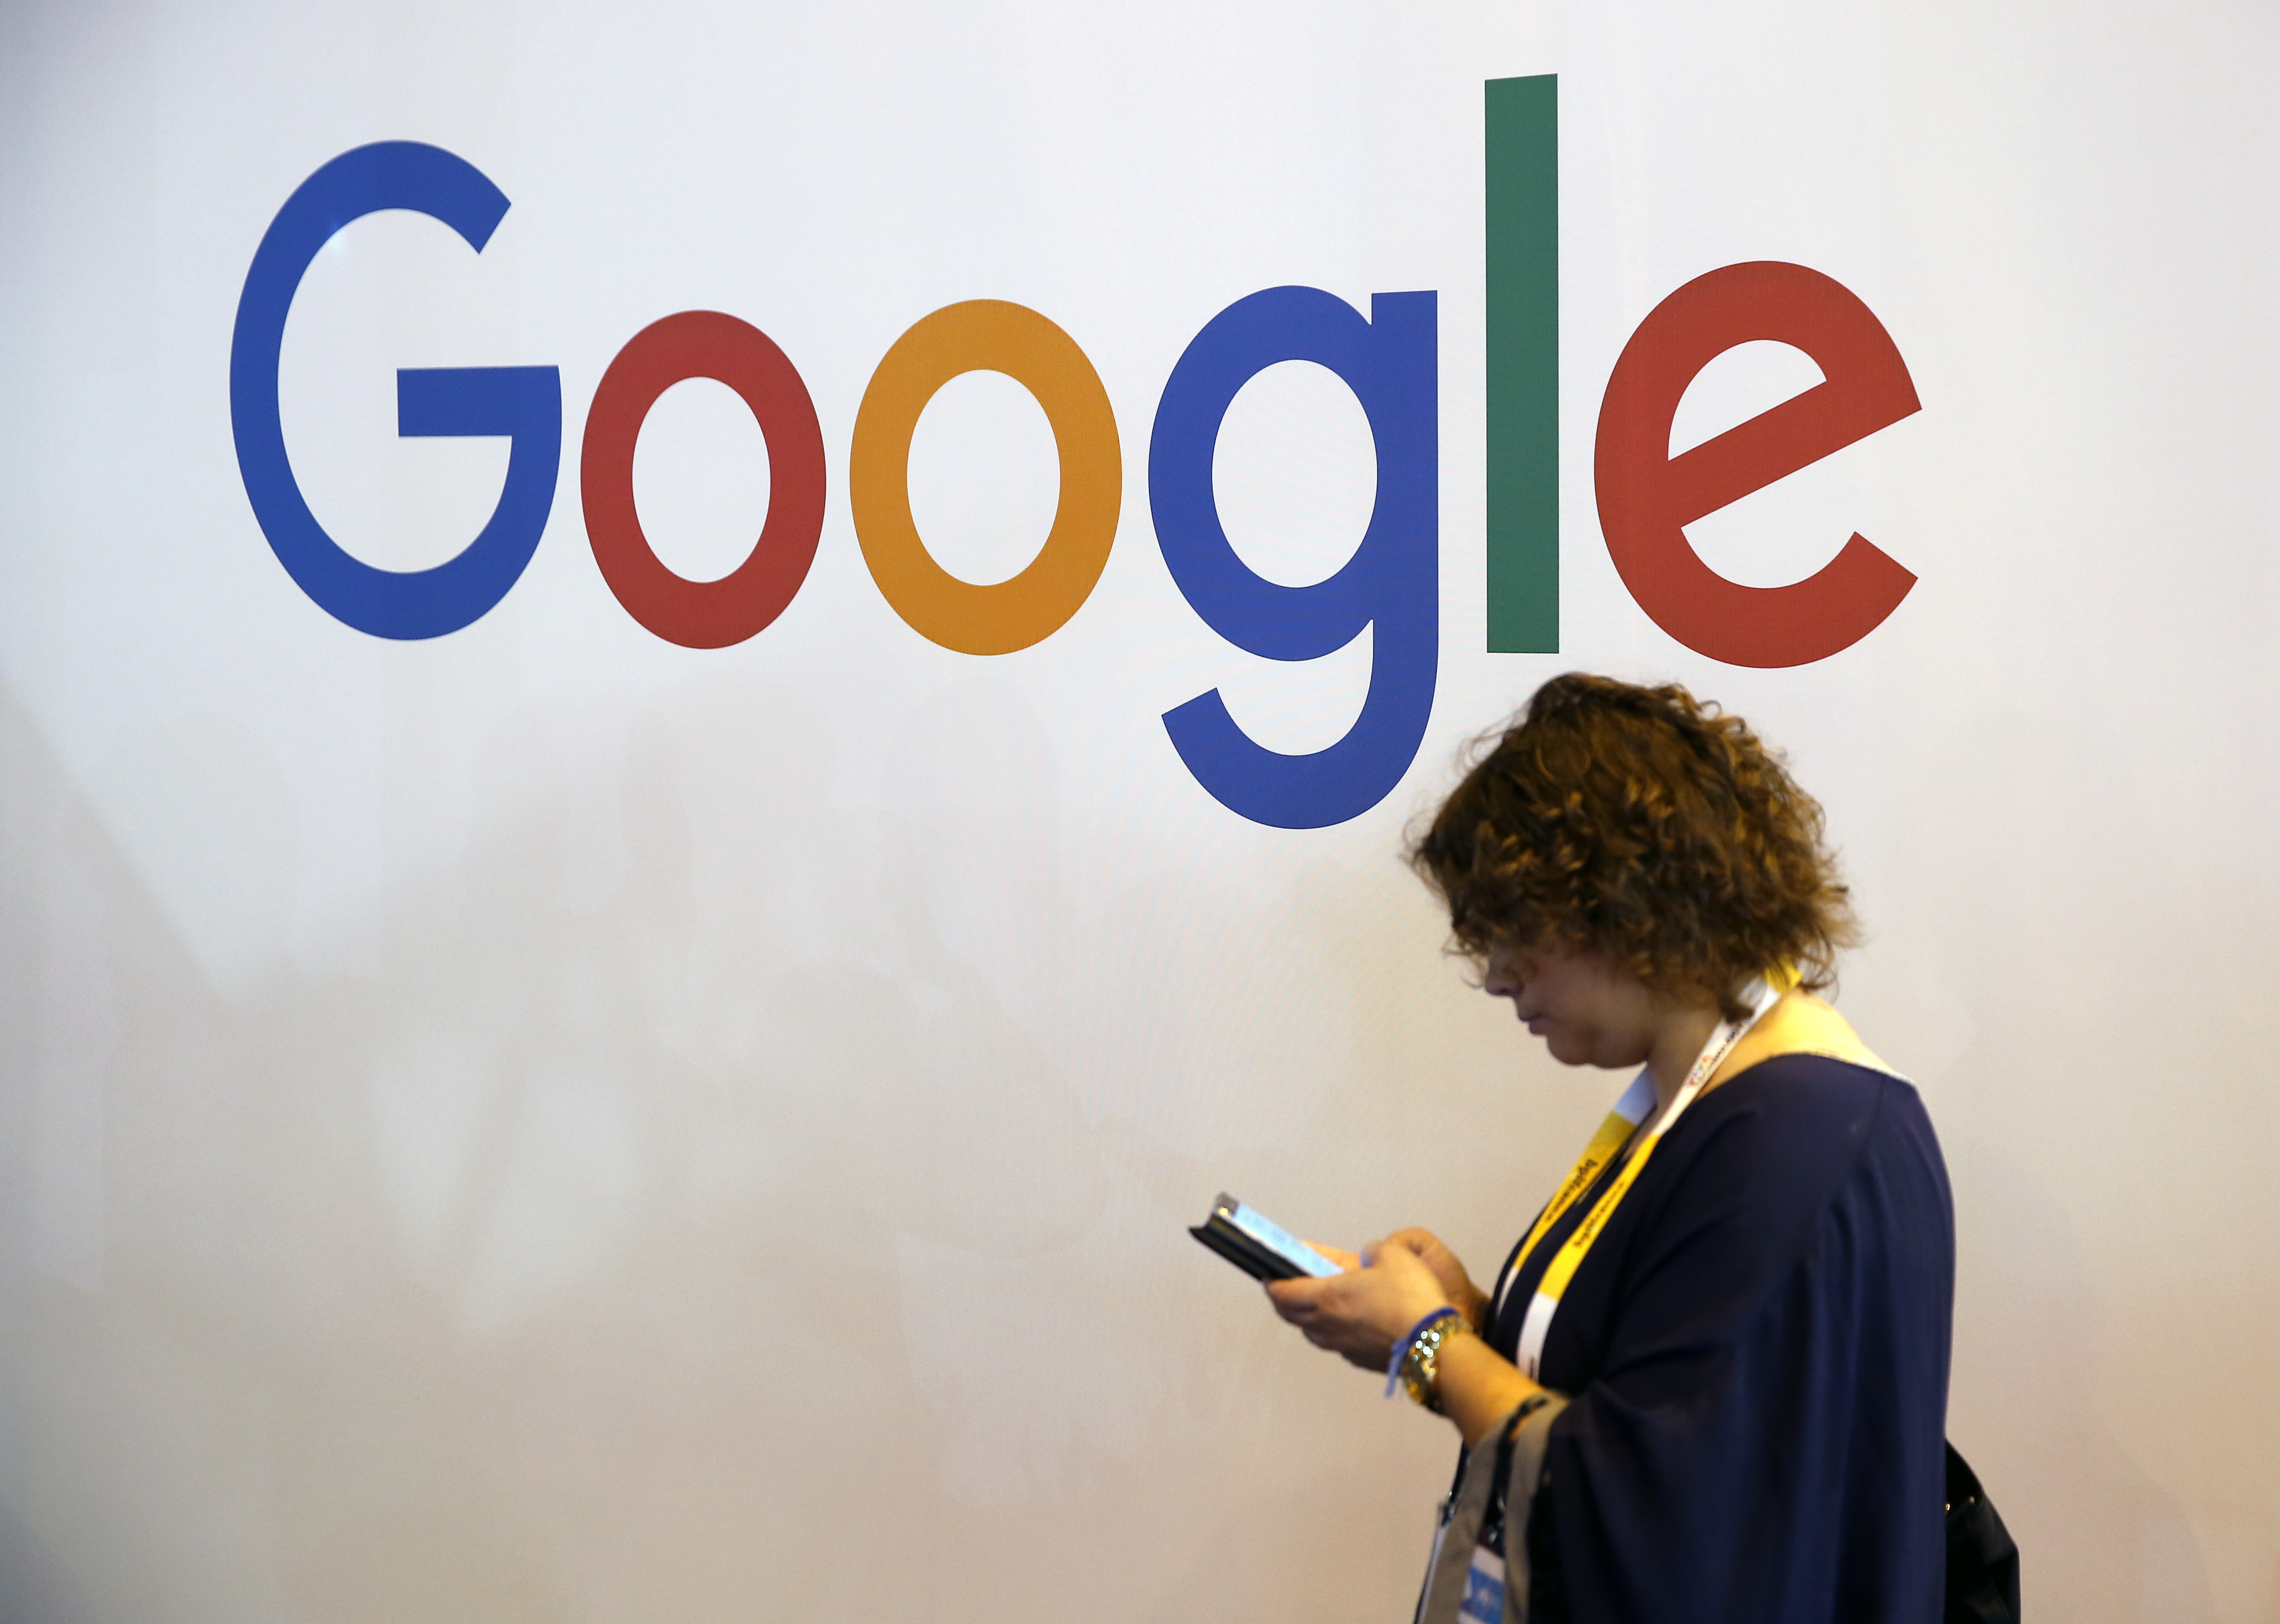 Google diversity shareholder proposal failed at annual meeting